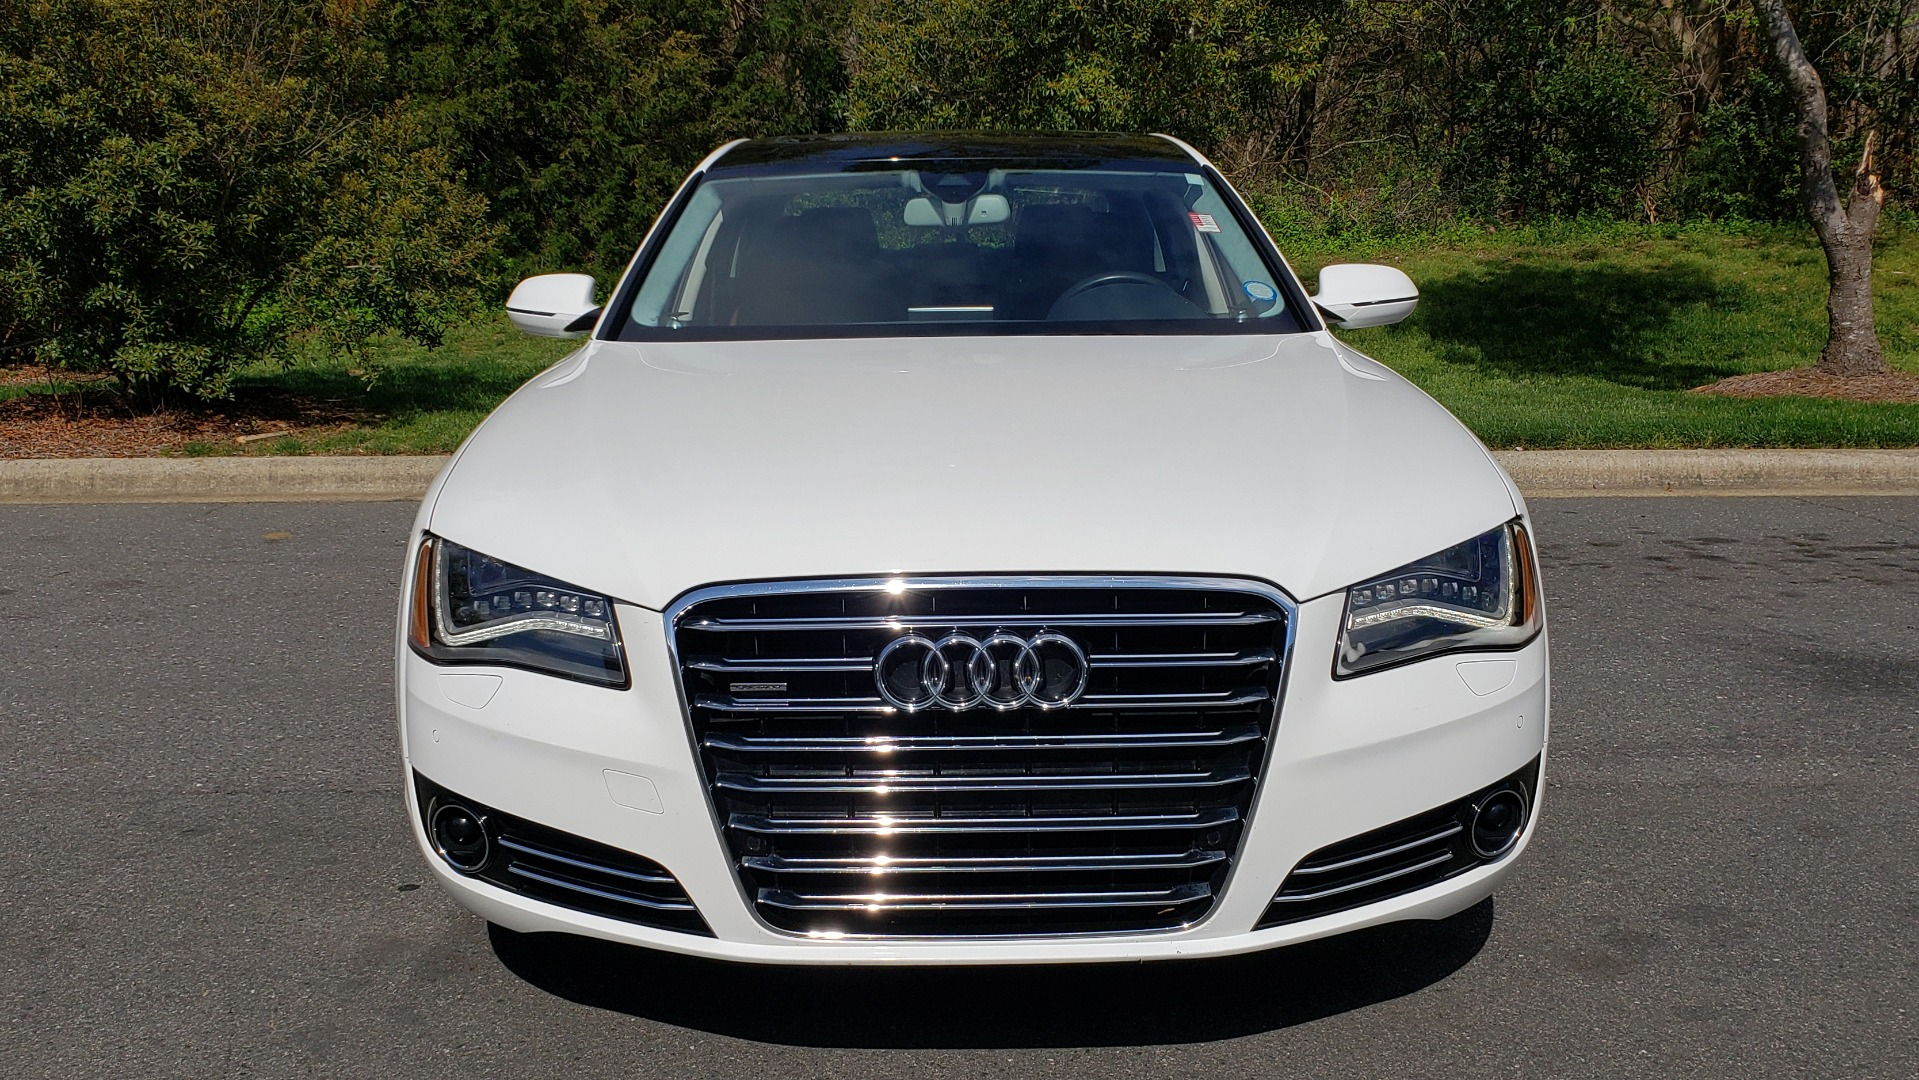 Used 2011 Audi A8 L QUATTRO / NAV / PANO-ROOF / REARVIEW / BSM / B&O SND for sale Sold at Formula Imports in Charlotte NC 28227 21